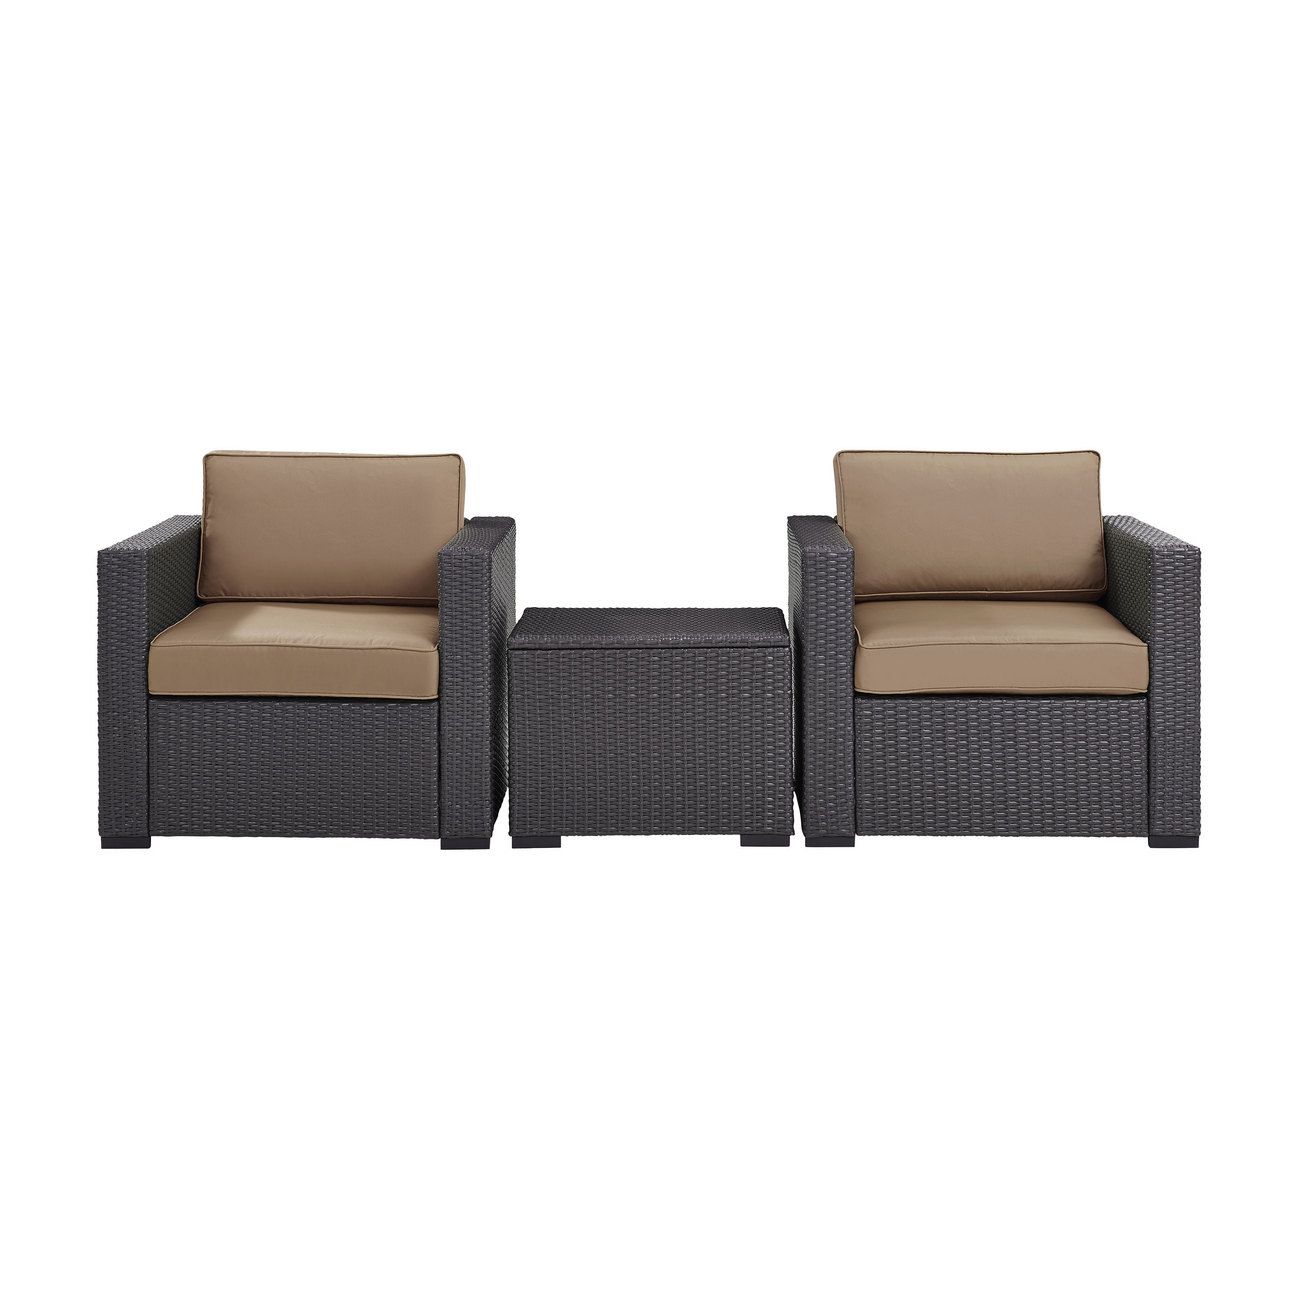 Biscayne 2 Person Outdoor Wicker Seating Set in Mocha - Two Outdoor Wicker Chairs & Coffee Table - Crosley KO70104BR-MO